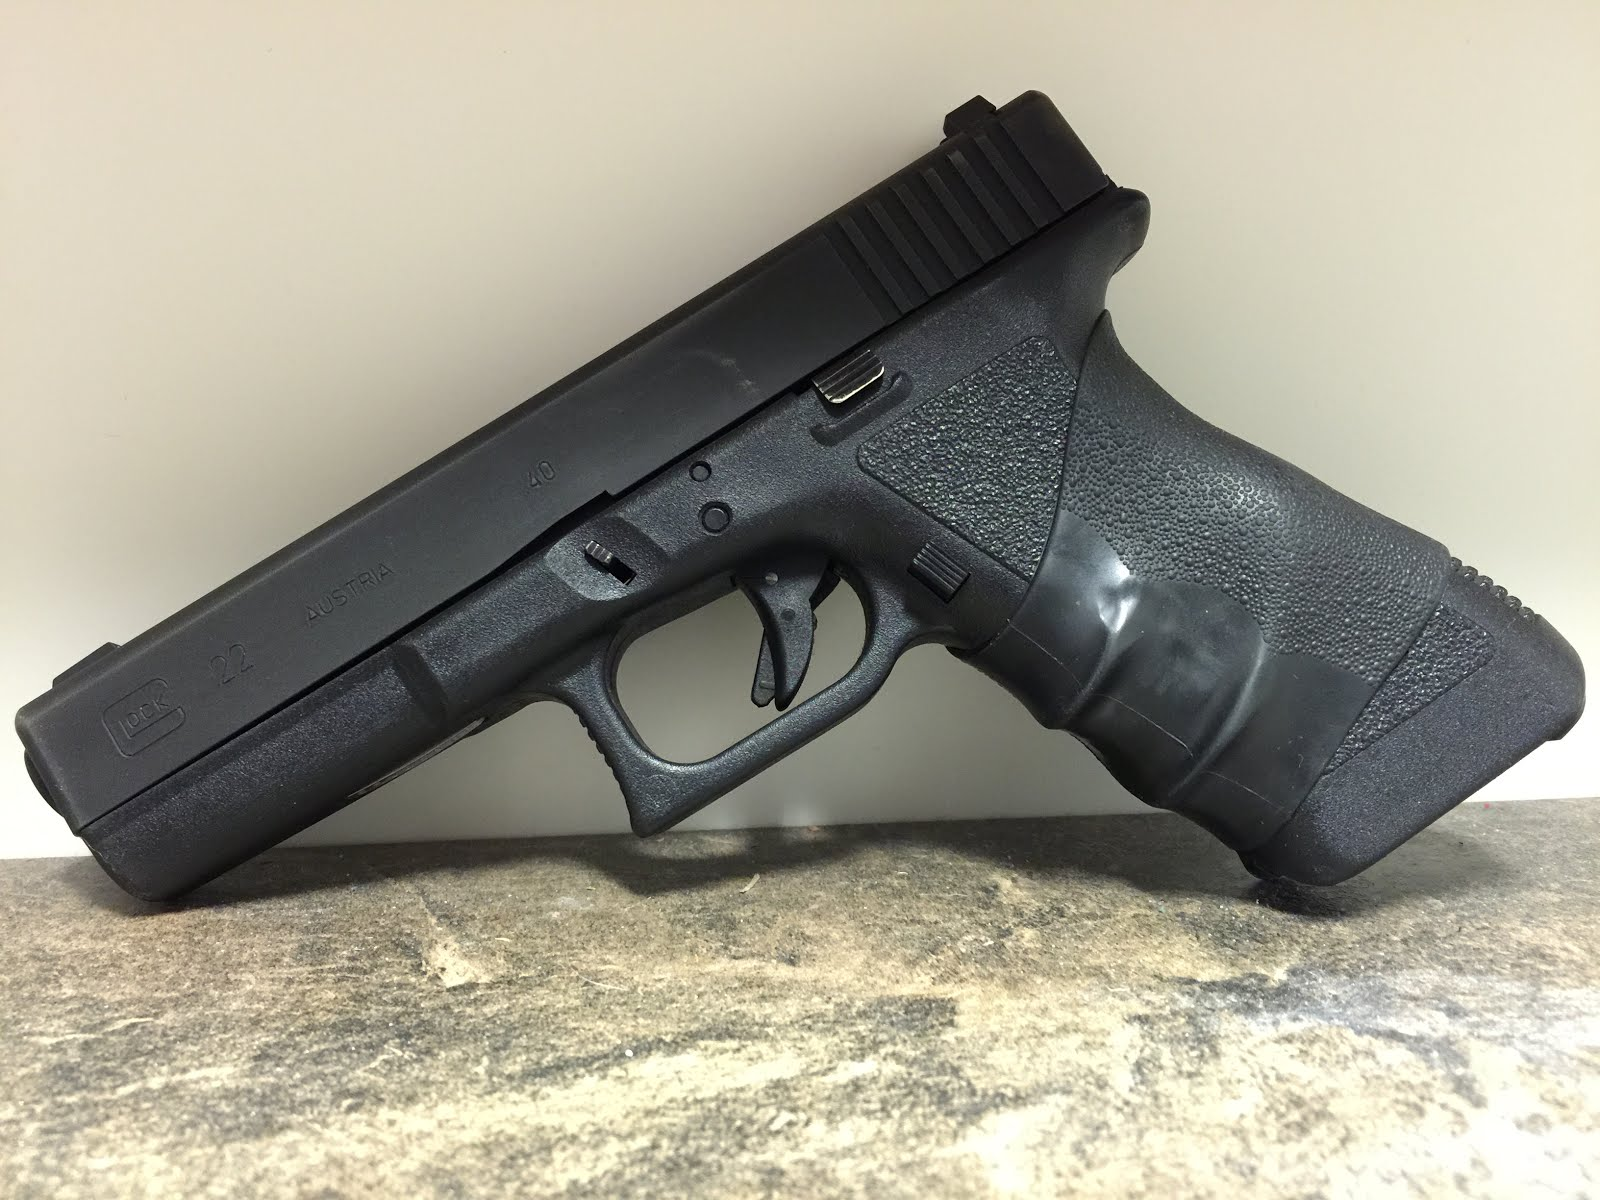 Joe Wheeler's Blog: Glock 19 MOS with Burris Fastfire 3 Review